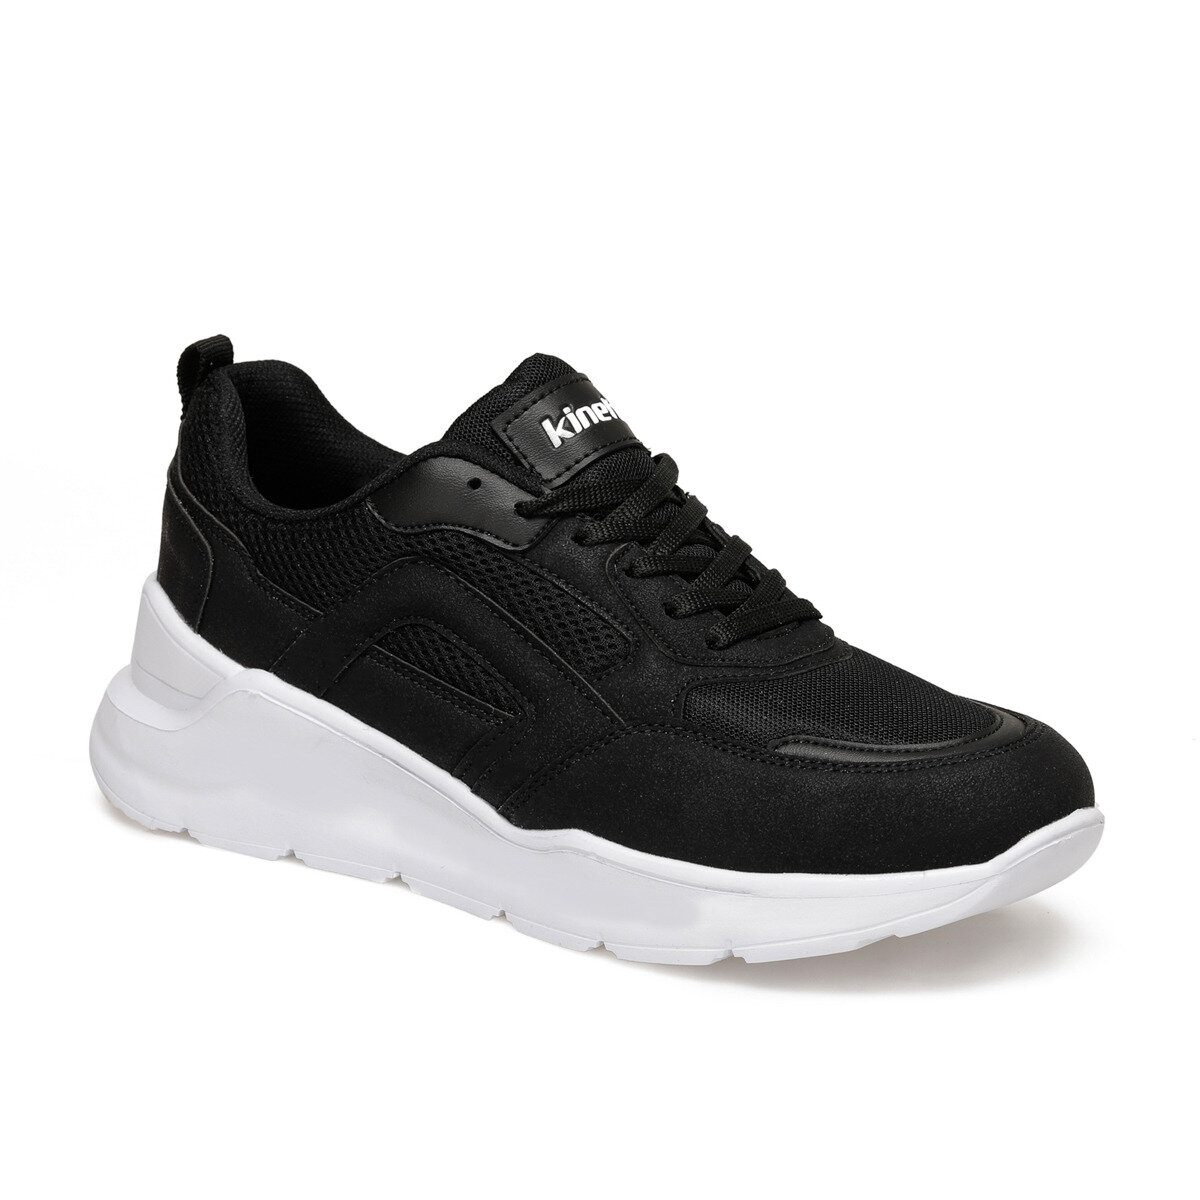 FLO LIDOR Black Male Sports Shoes KINETIX